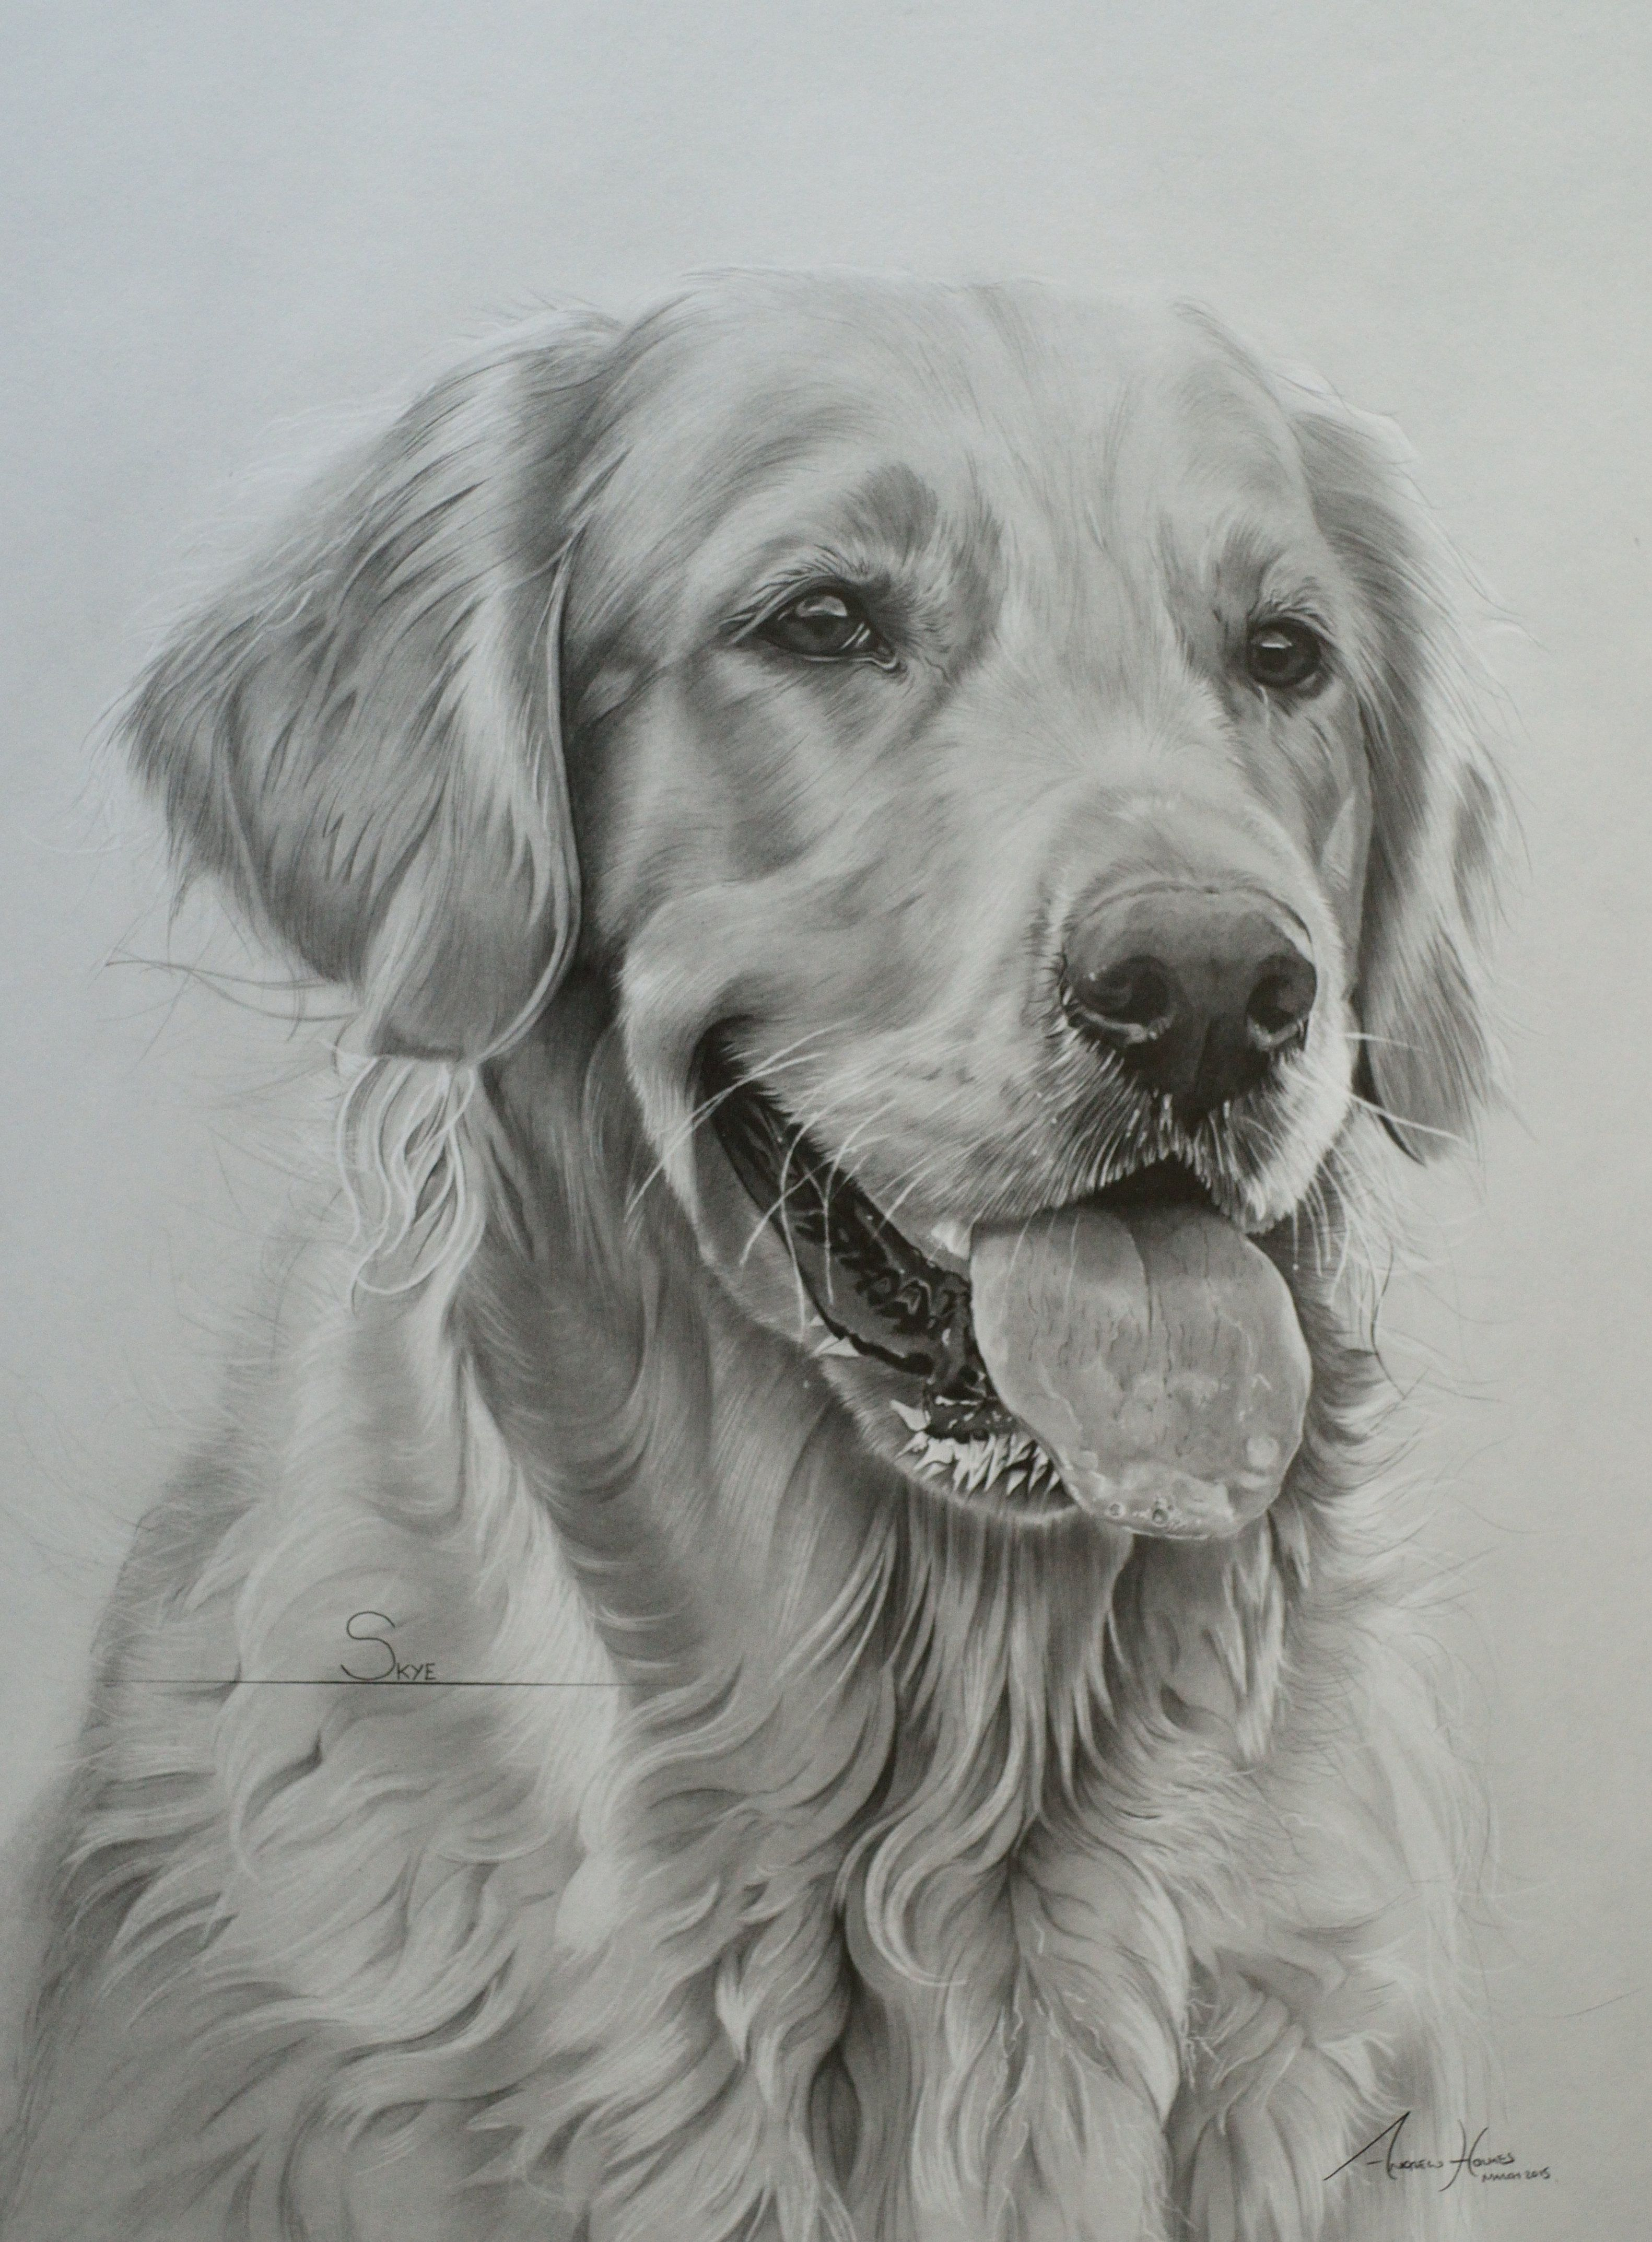 This Is Skye A Golden Retriever Who Lives In Scotland She Was Drawn 20 X16 From A Highly Deta Golden Retriever Art Golden Retriever Drawing Golden Retriever